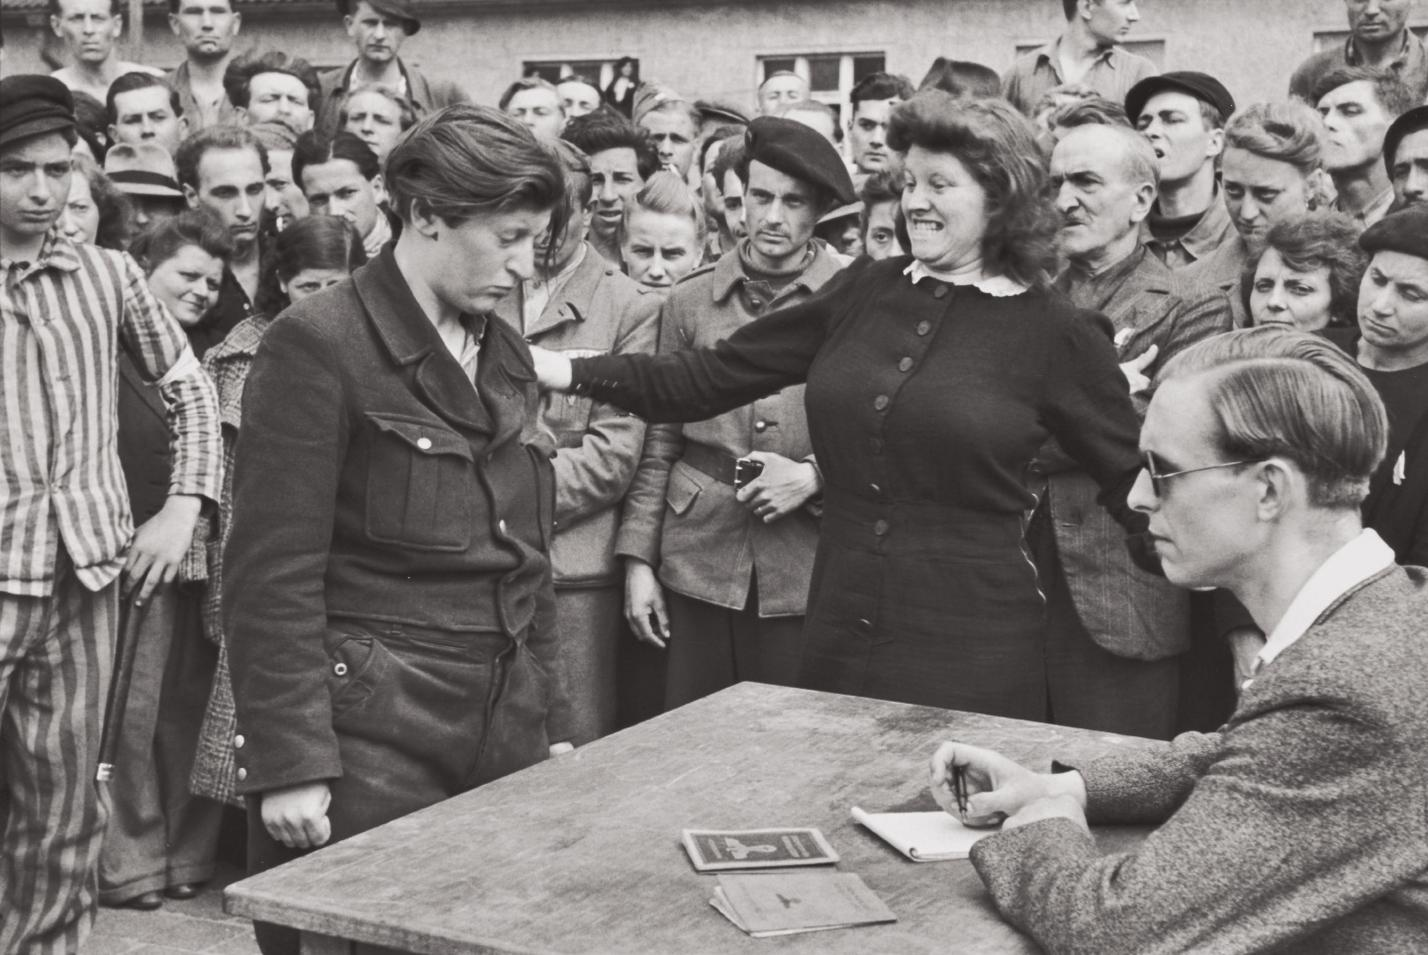 Henri Cartier-Bresson-Gestapo Informer Recognized By A Woman She Had Denounced, Transit Camp, Dessau, Germany-1945